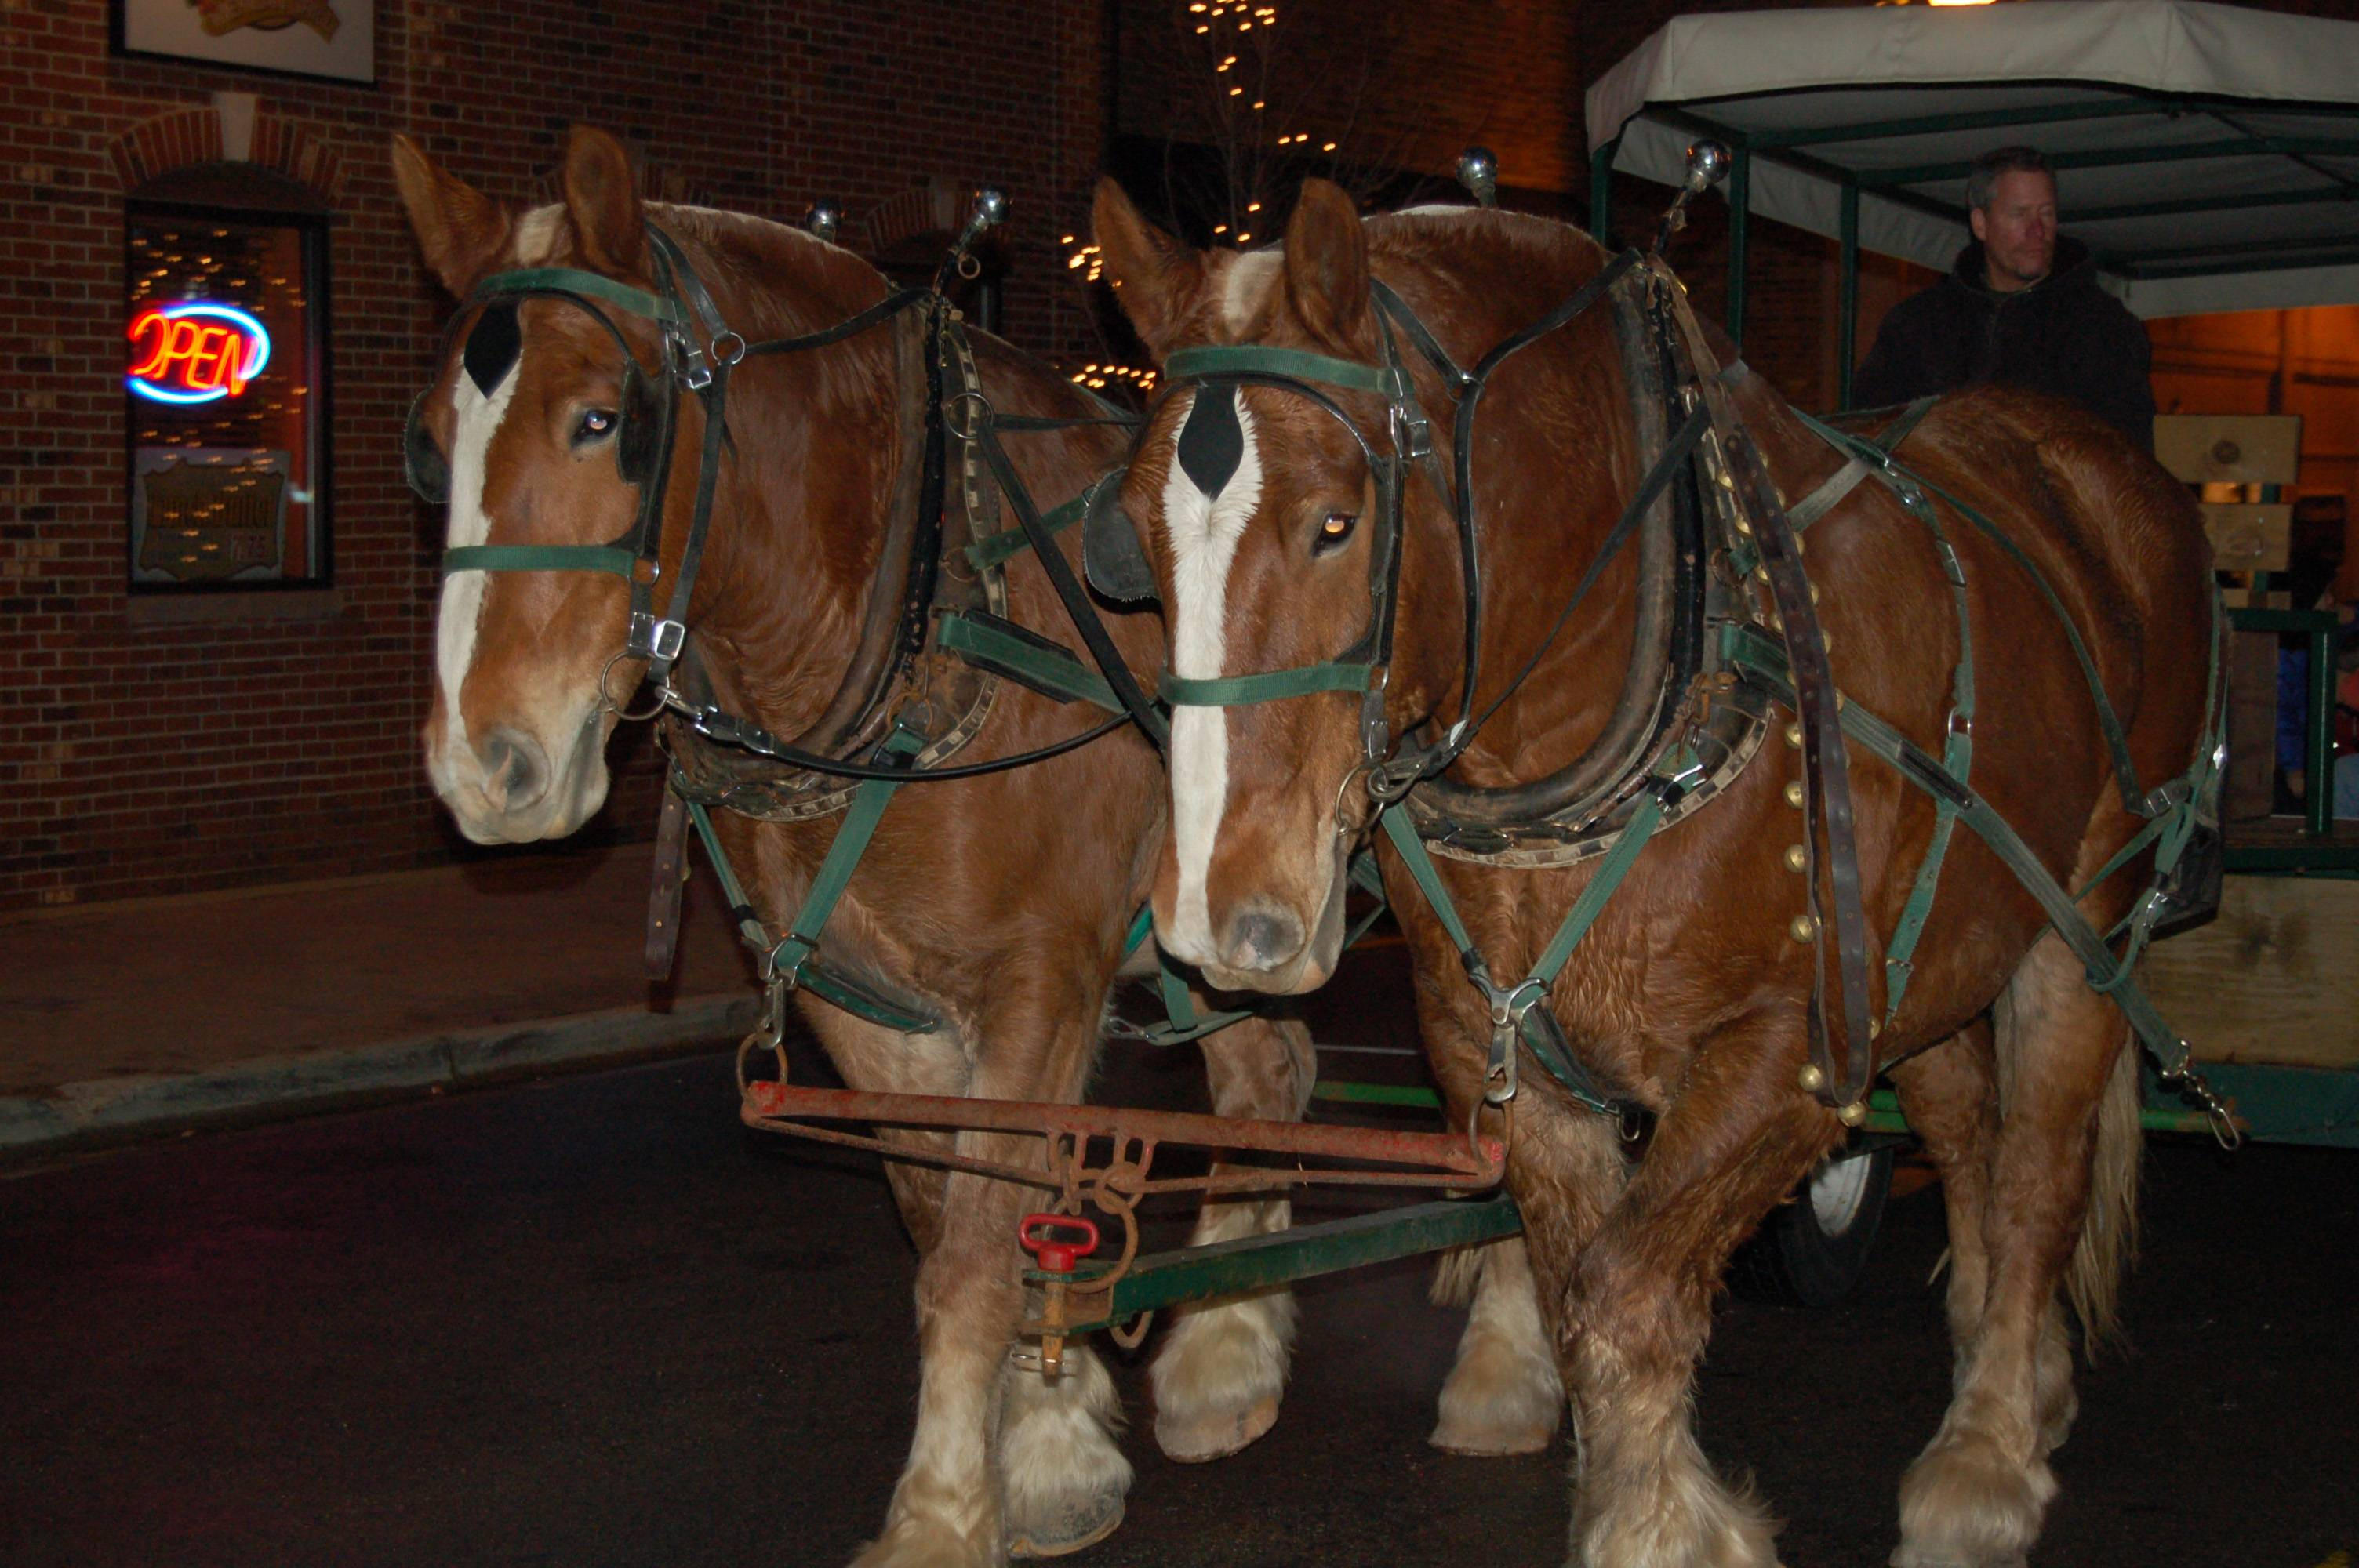 Horse-drawn trolley rides through luminary-lit streets in the historic district are one of many free, family-friendly activities scheduled for West Chicago's Frosty Fest on December 1,